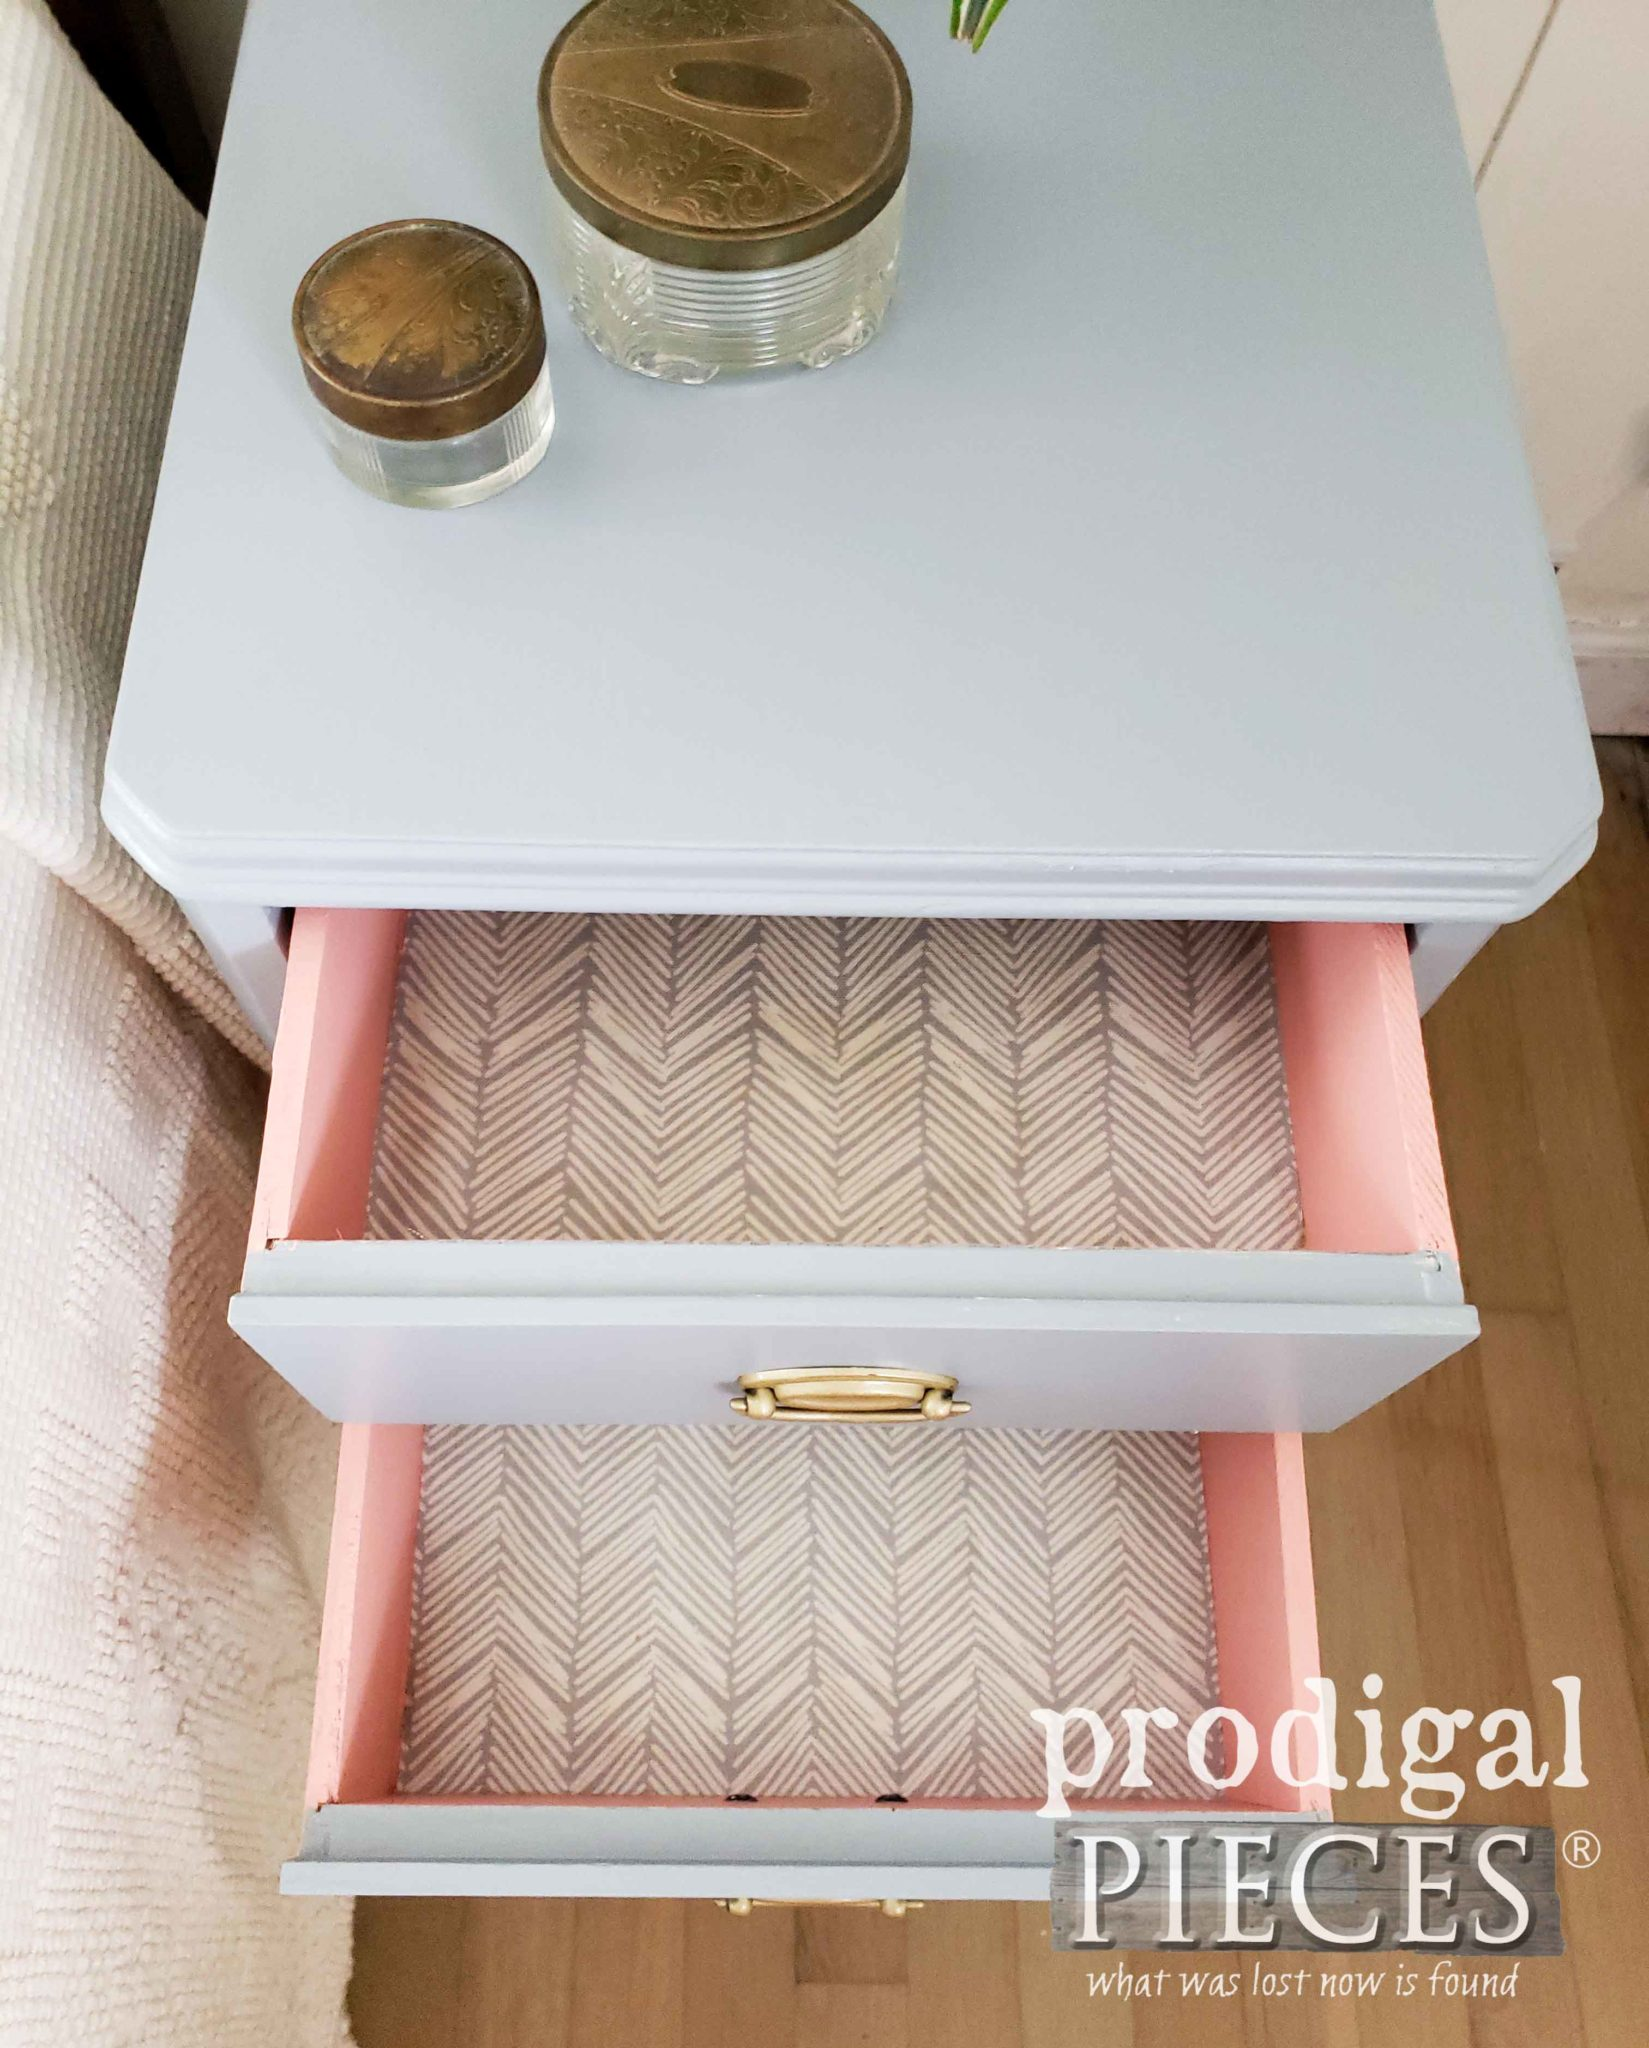 Fabric Lined Open Drawers of Vintage Mid Century Modern Nightstand by Larissa of Prodigal Pieces | prodigalpieces.com #prodigalpieces #diy #home #homedecor #furniture